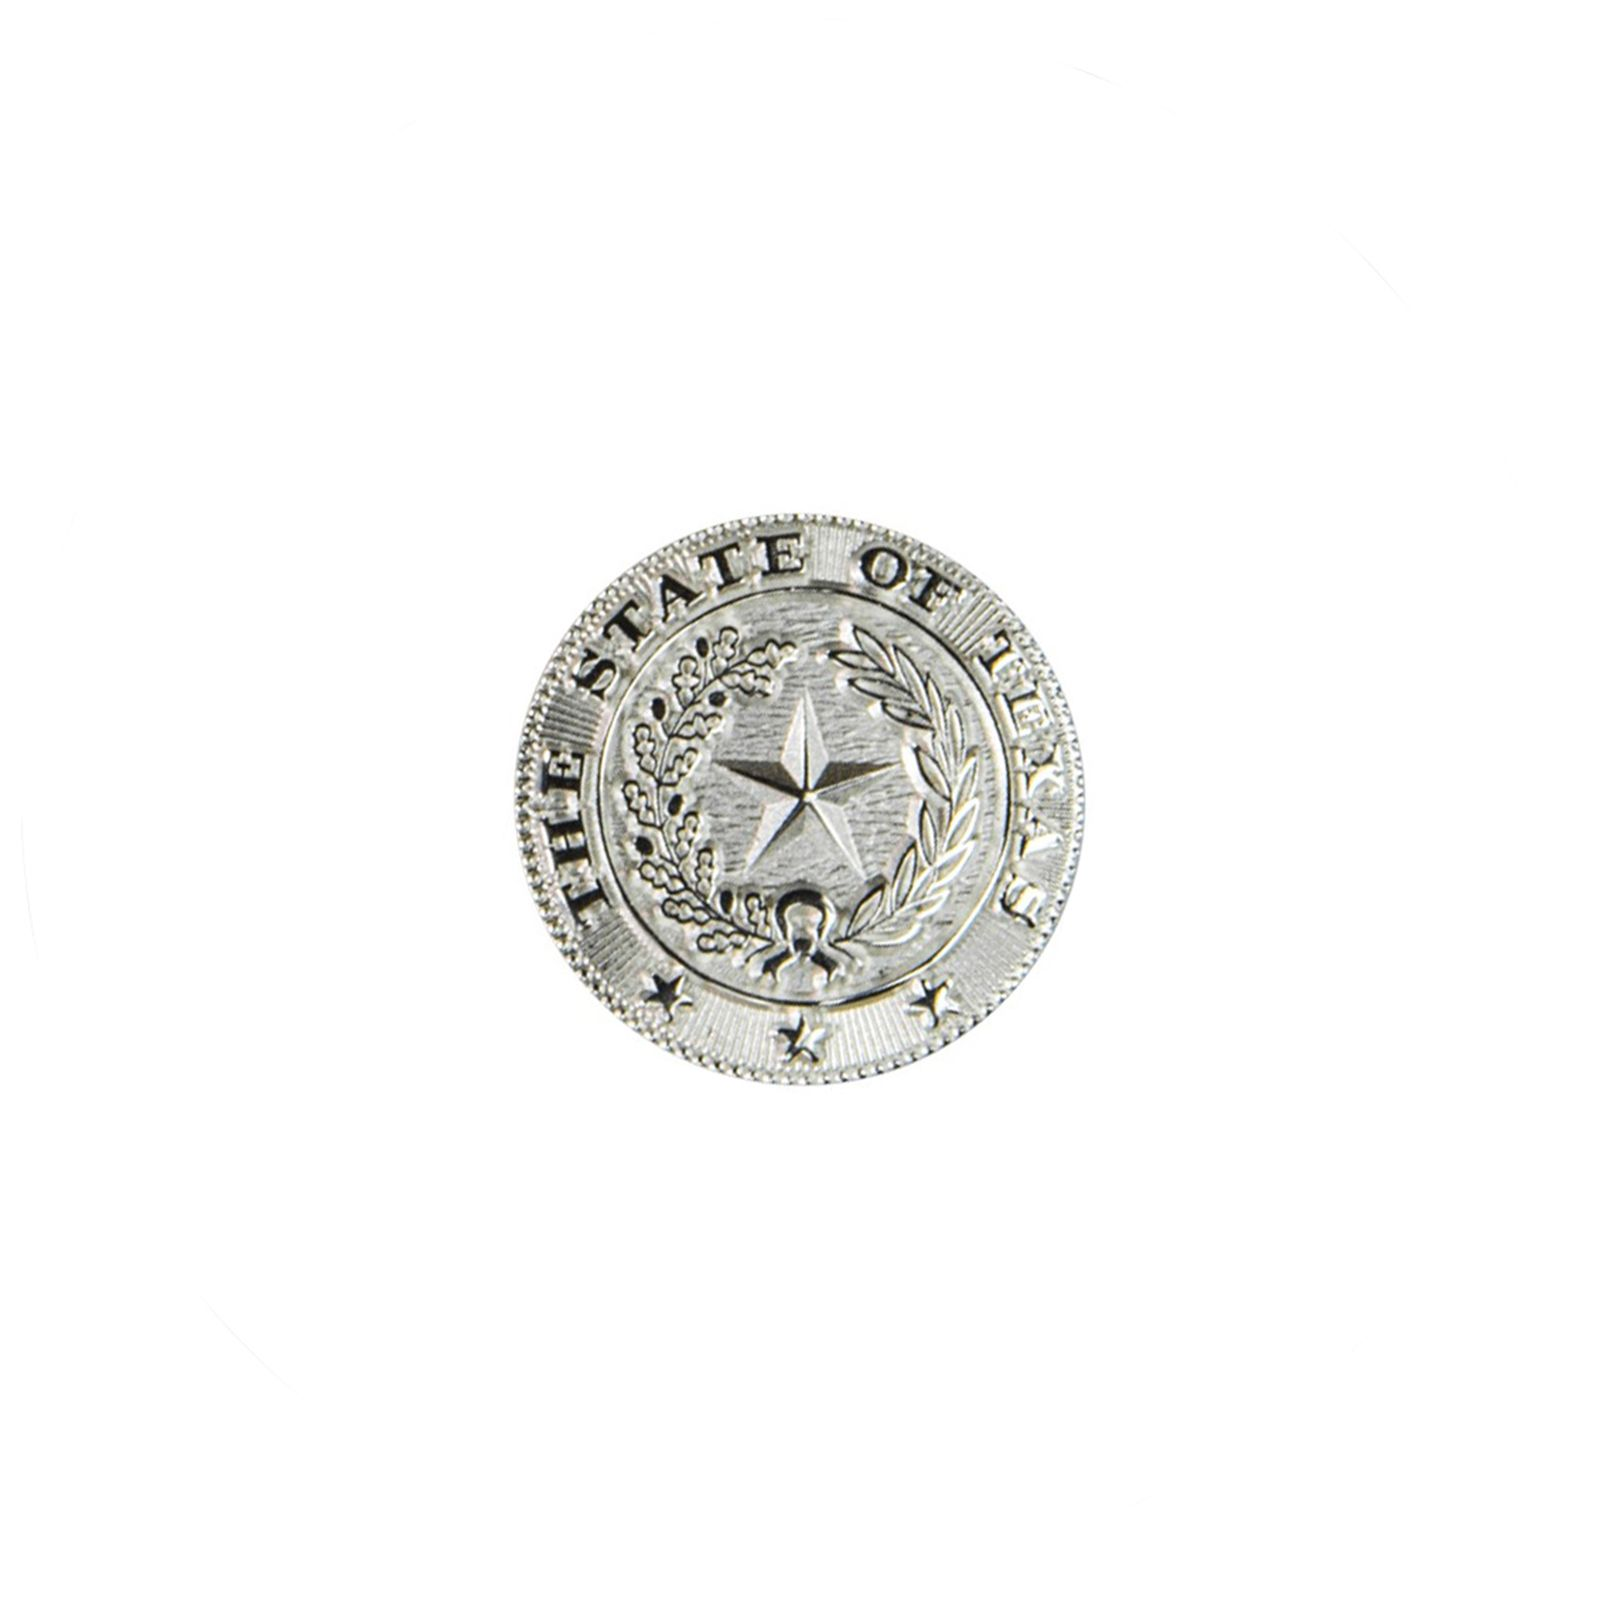 Silver Plate State Seal Lapel Pin